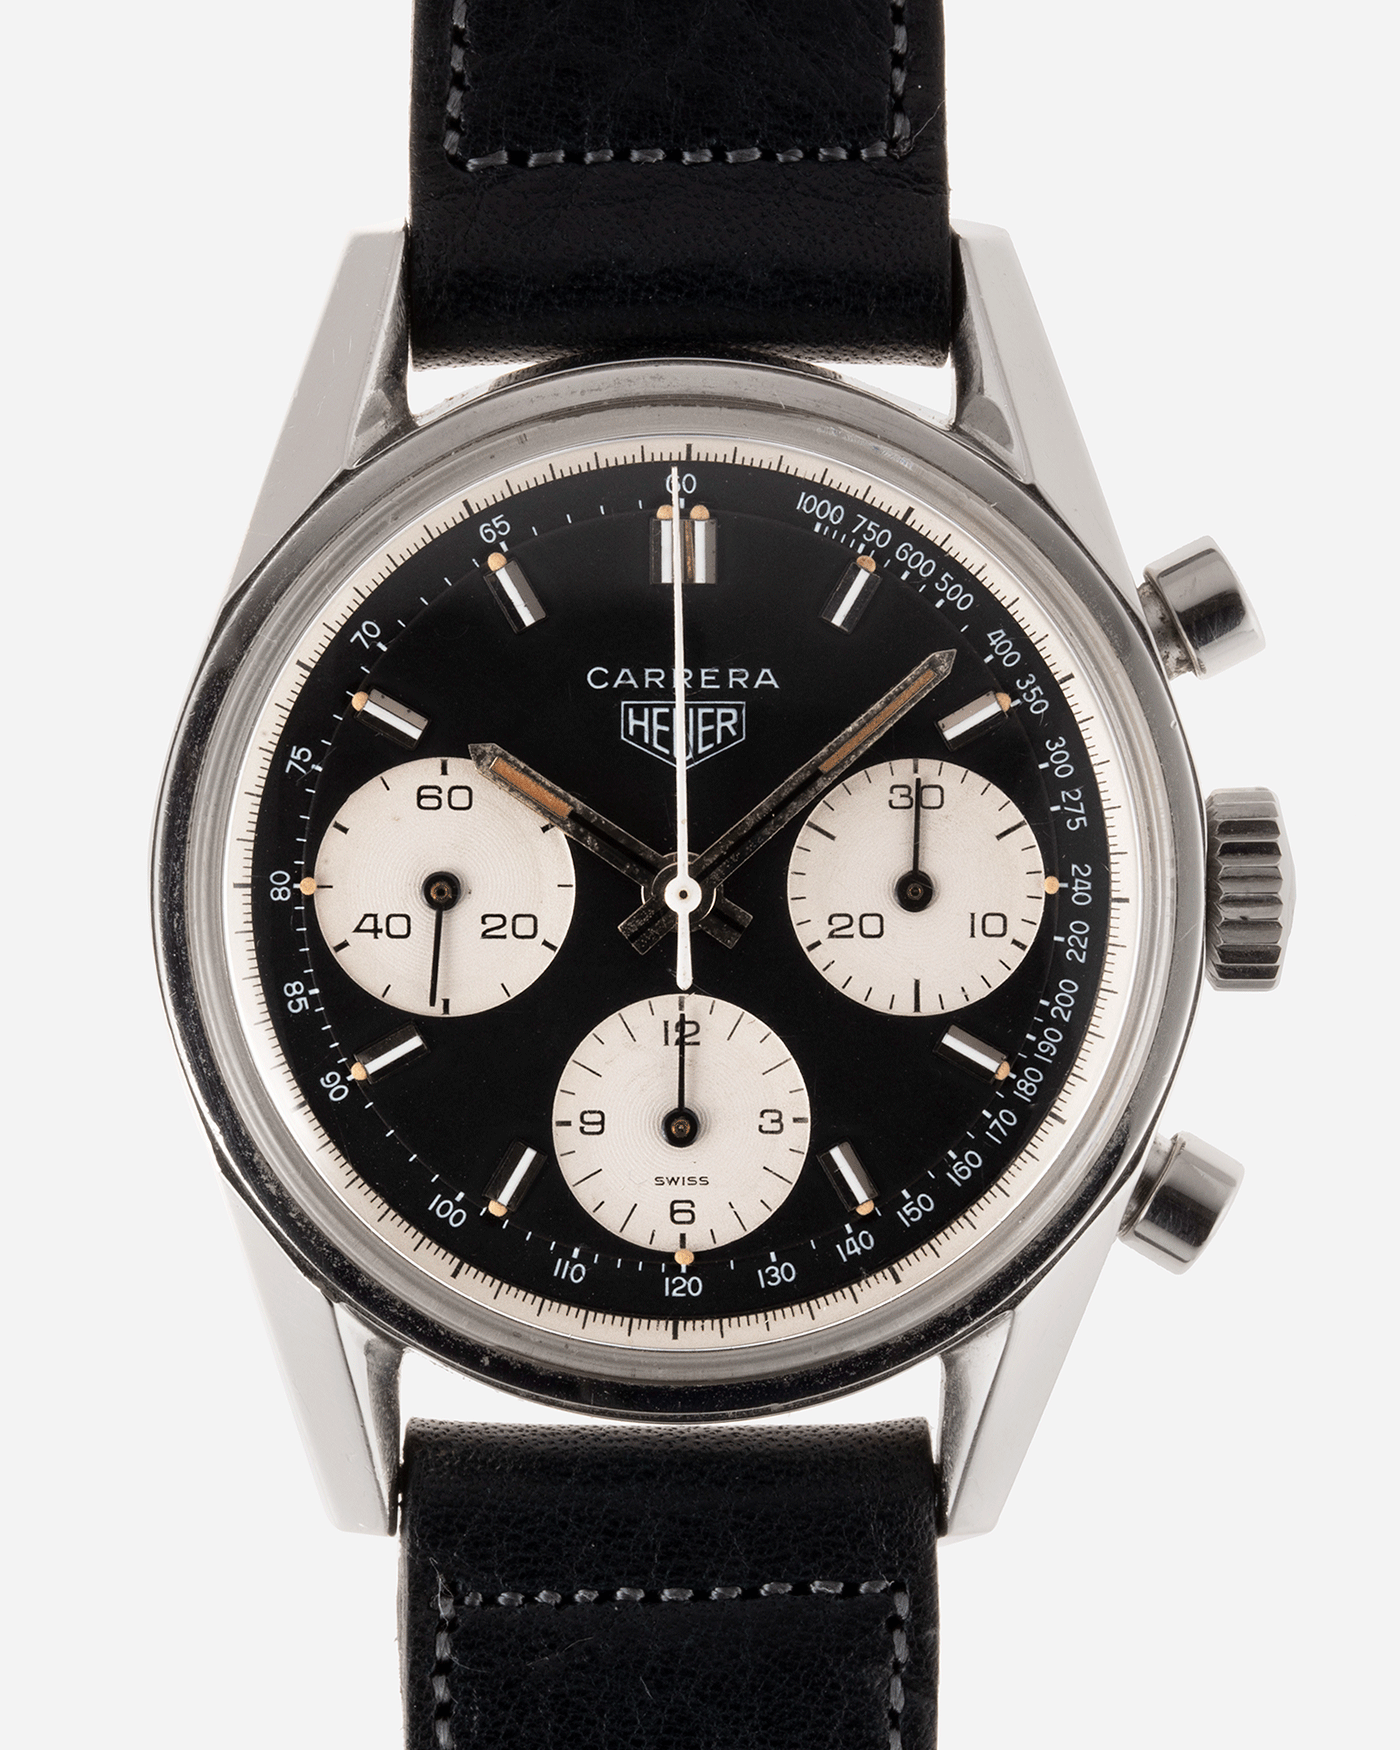 Brand: Heuer Year: 1960's Model: Carrera Reference Number: 2447NST Material: Stainless Steel Movement: Valjoux 72 Case Diameter: 36mm Lug Width: 18mm Bracelet/Strap: Accurate Form Navy Blue Calf